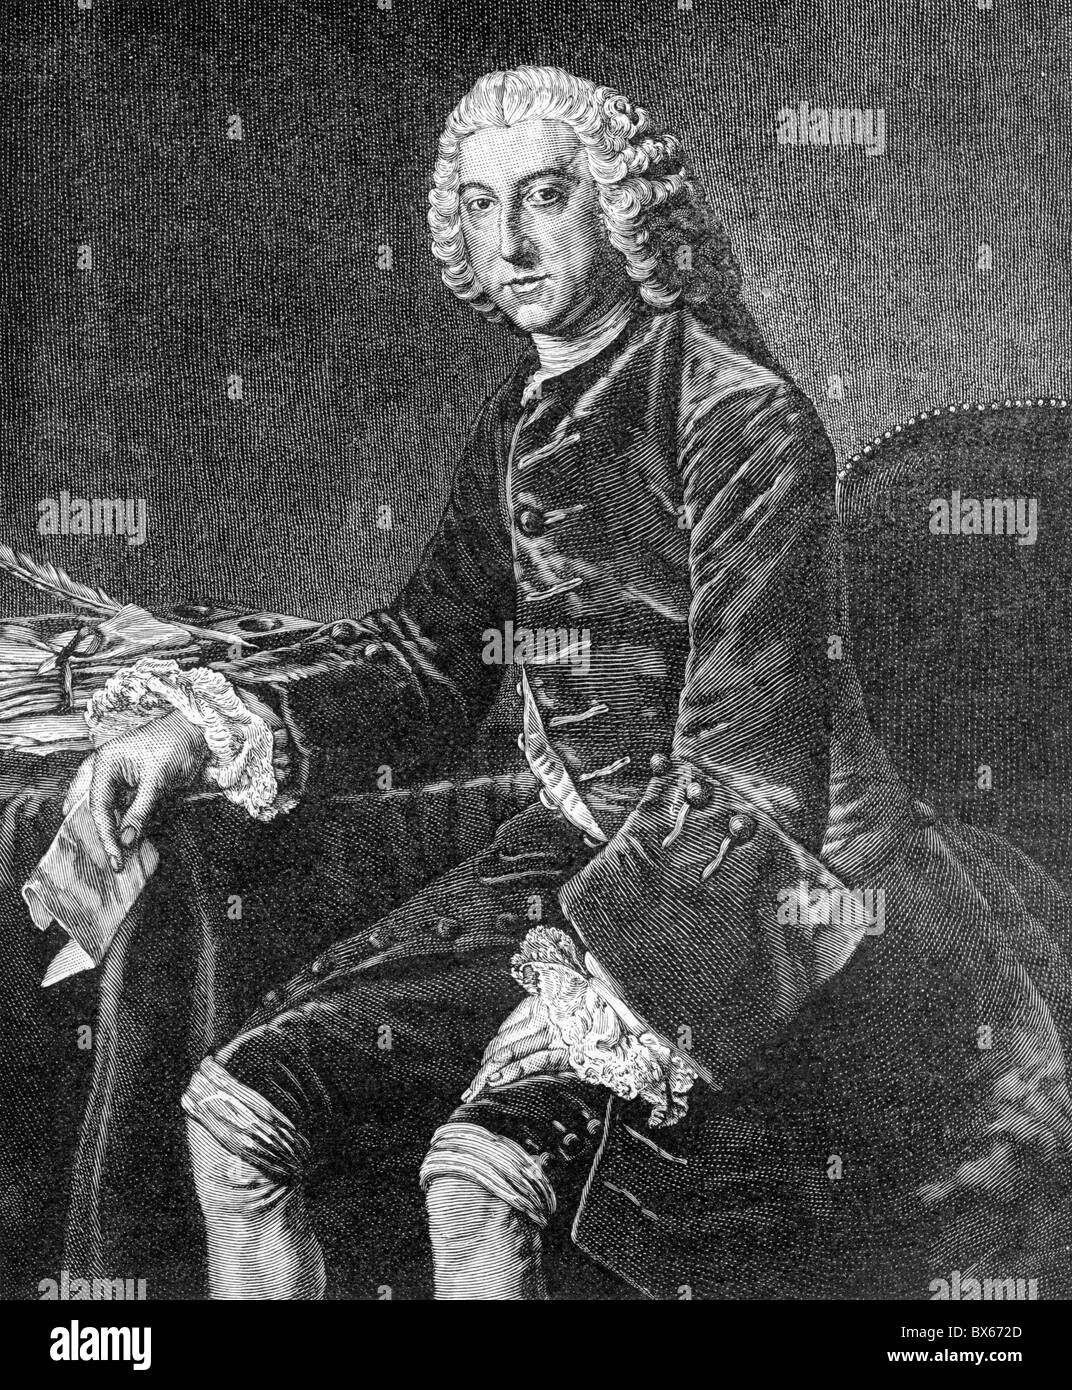 William Pitt, 1st Earl of Chatham; Black and White Illustration; - Stock Image